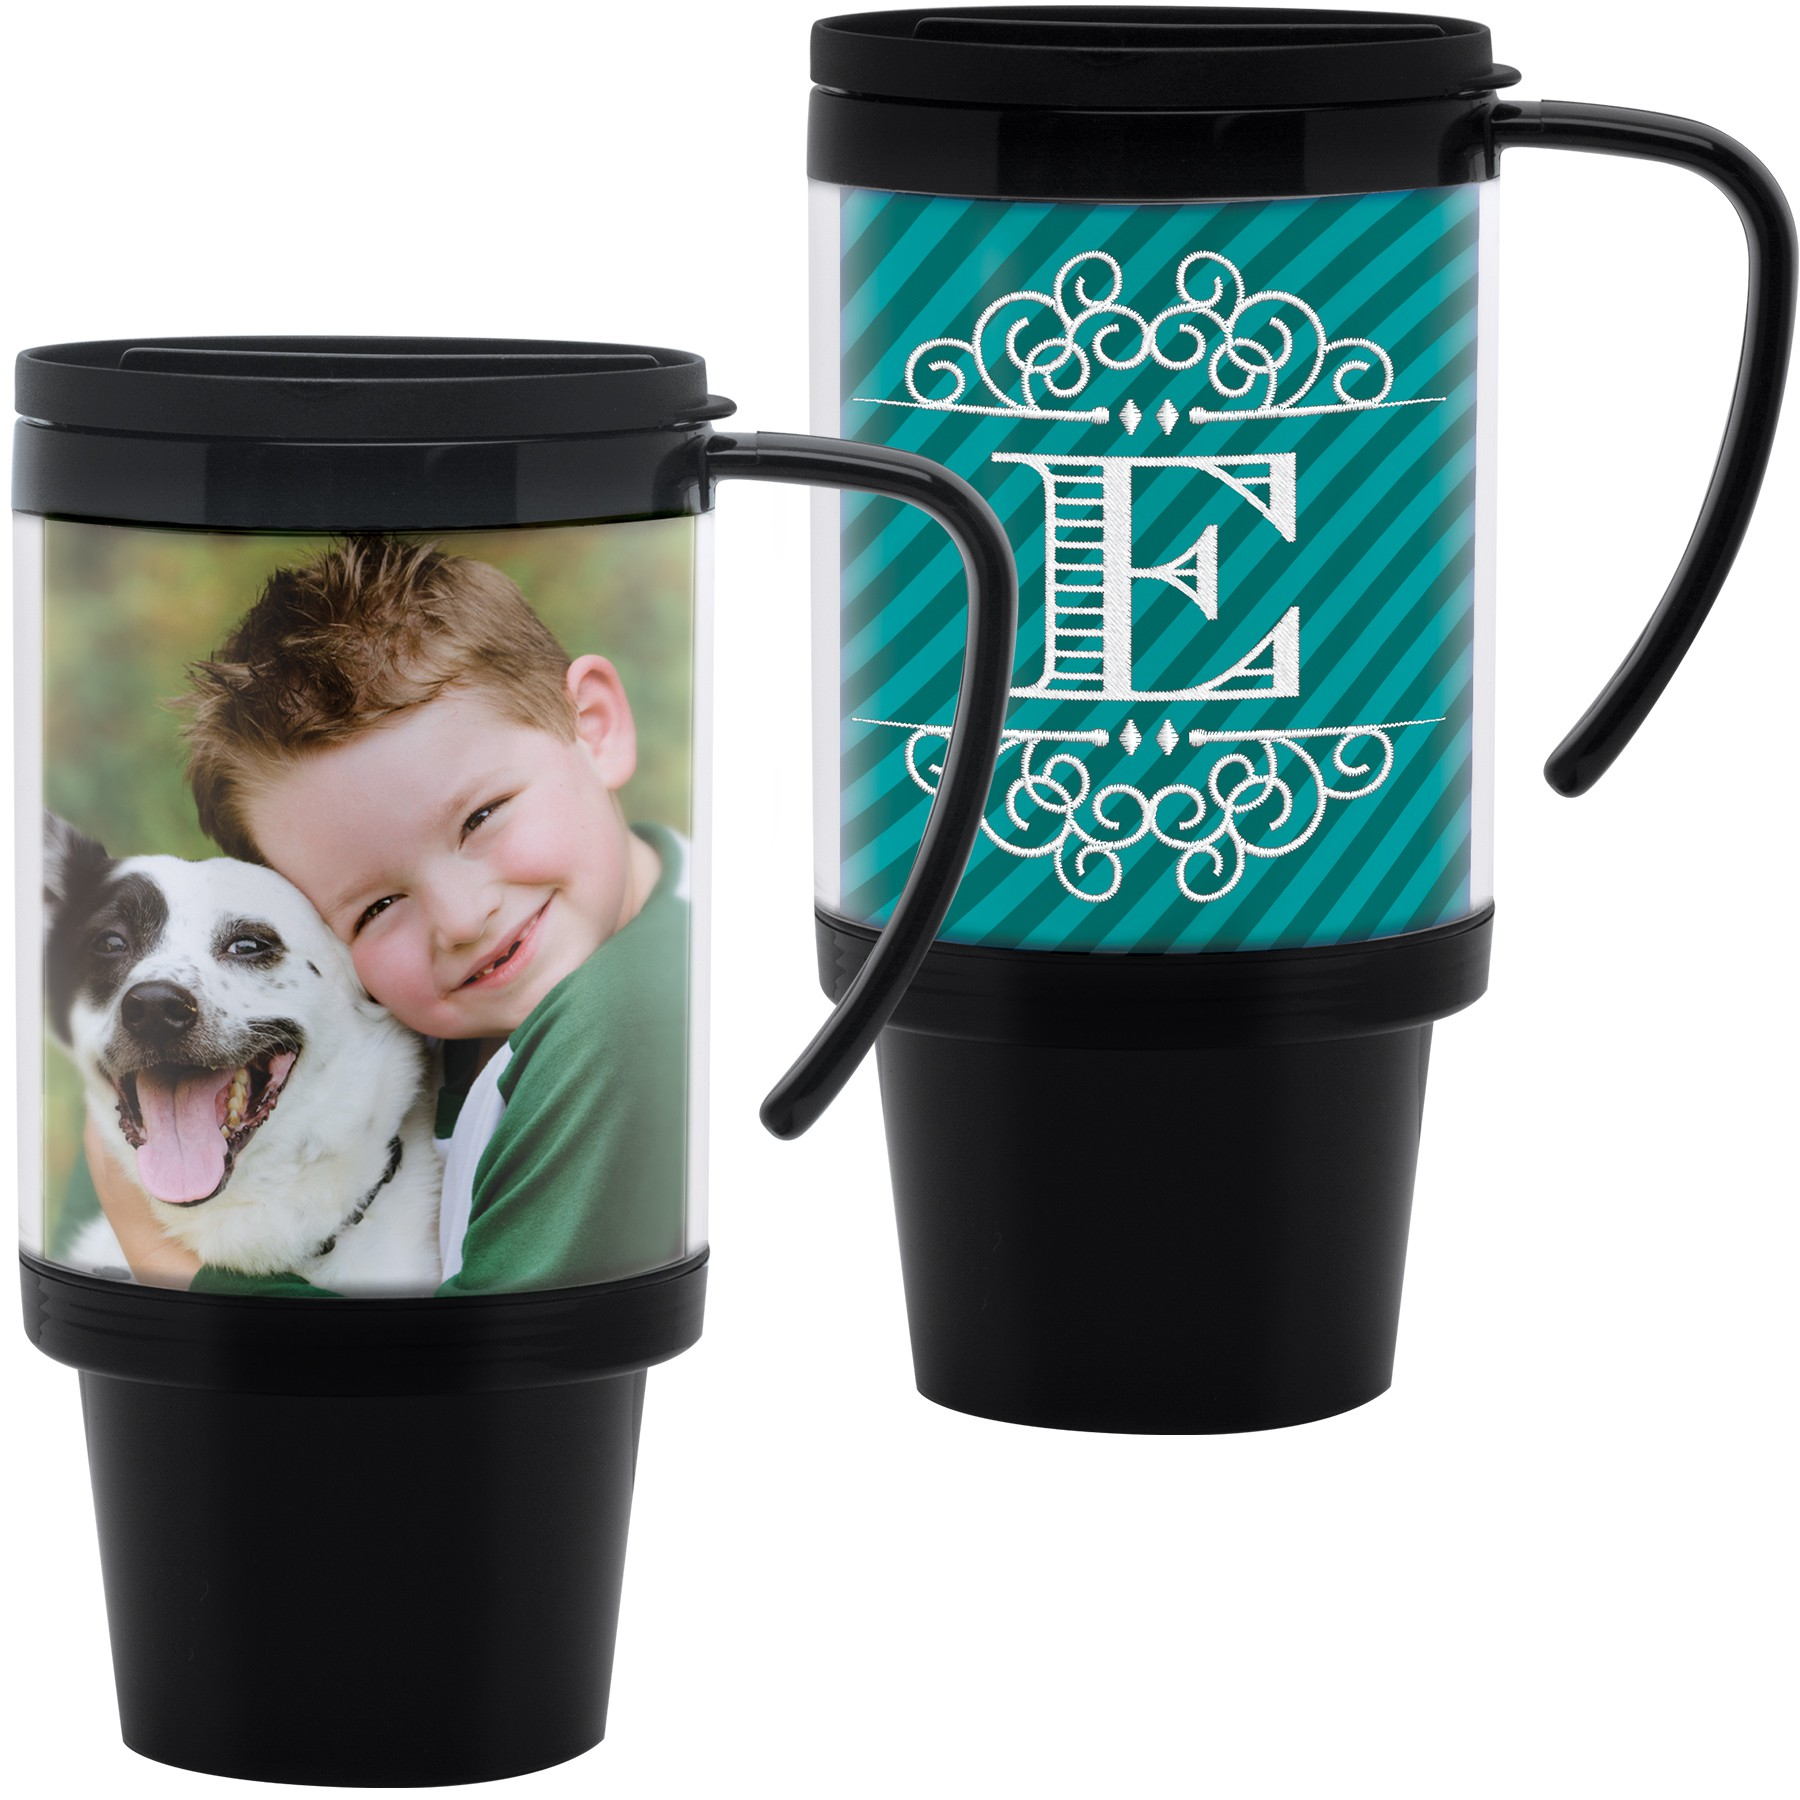 Photo travel mug template New York Pet Fashion Show - Mayor s Alliance for NYC s Animals